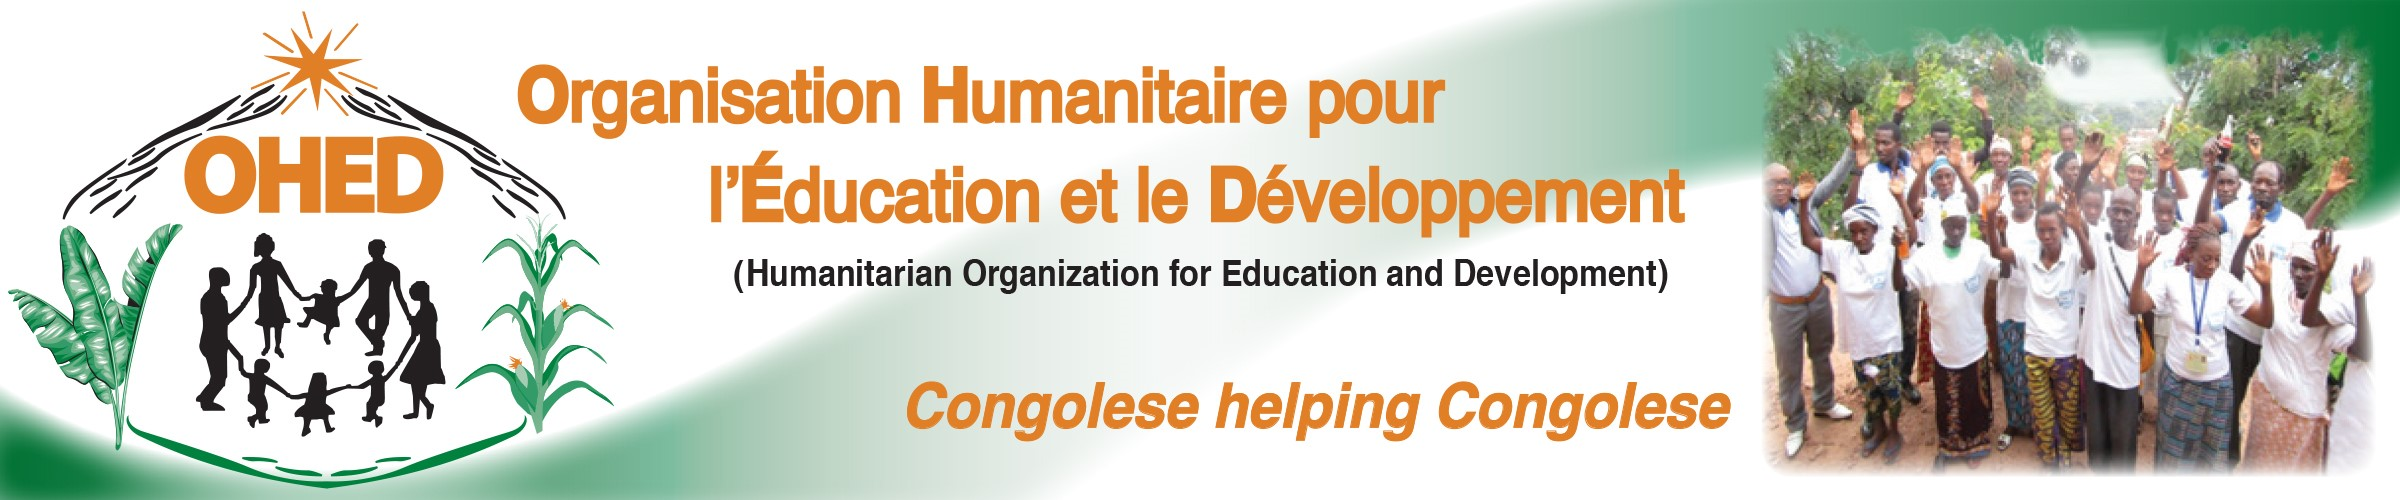 Humanitarian Organization for Education and Development (OHED) Logo